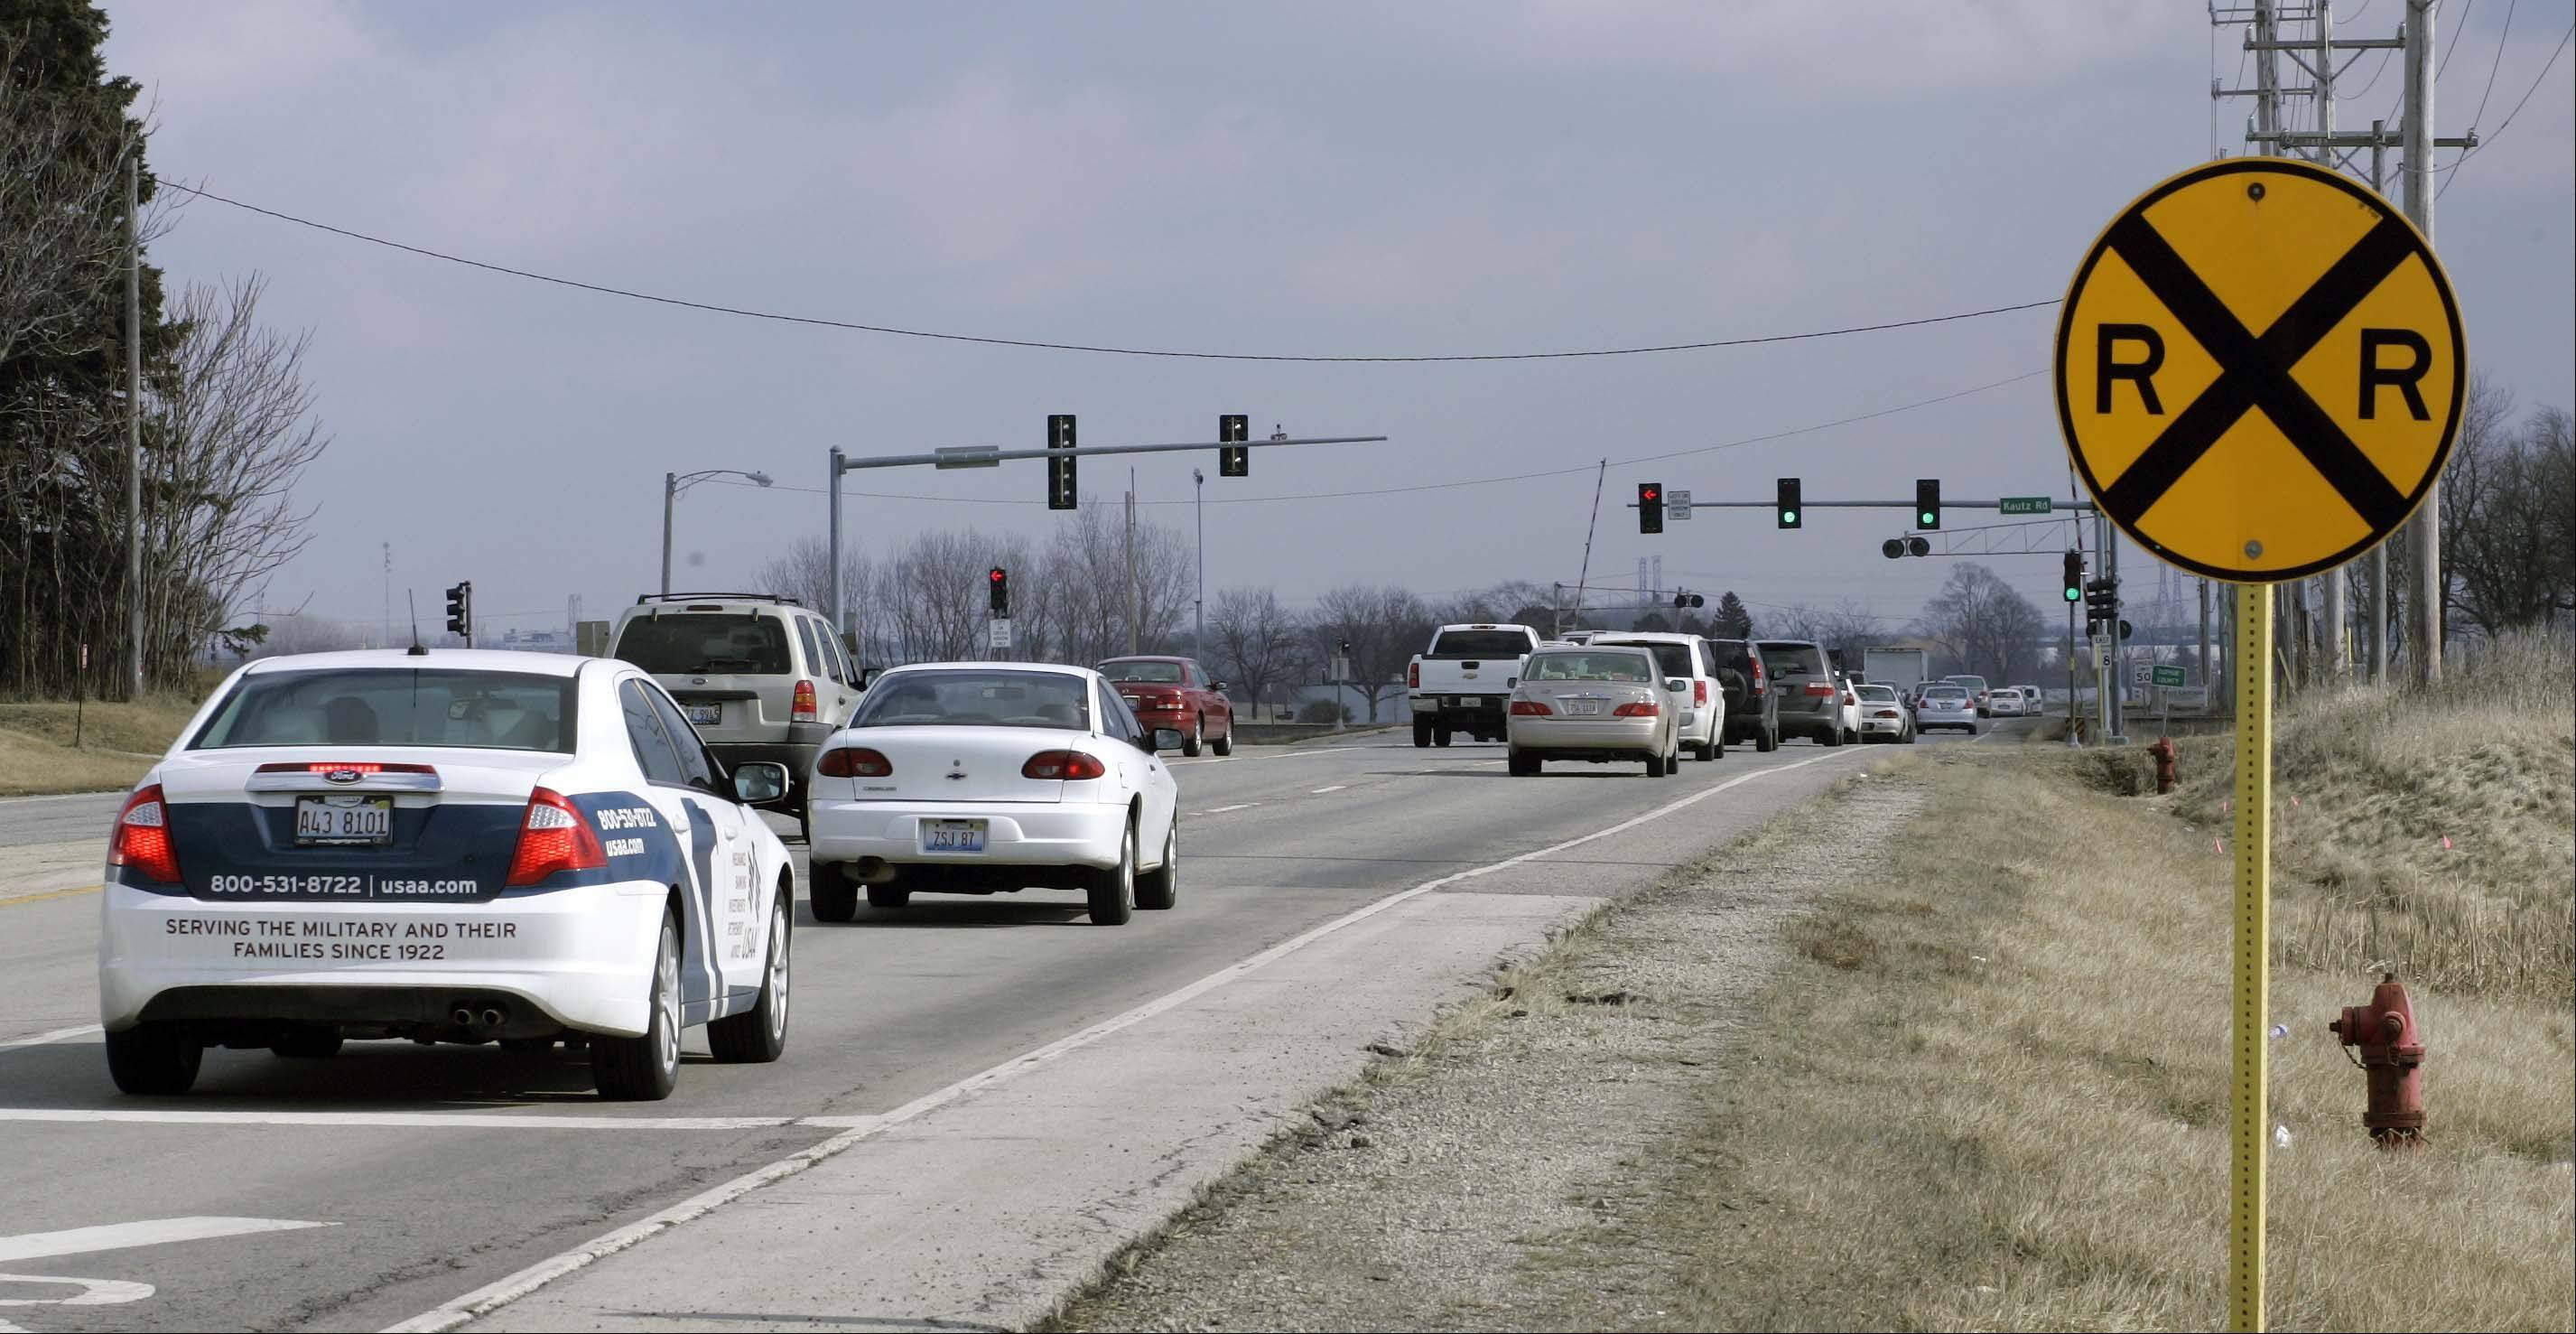 The state is going to rework the intersection of Route 38 and Kautz Road at the Union Pacific railroad tracks, building an overpass for Route 38 and Kautz.